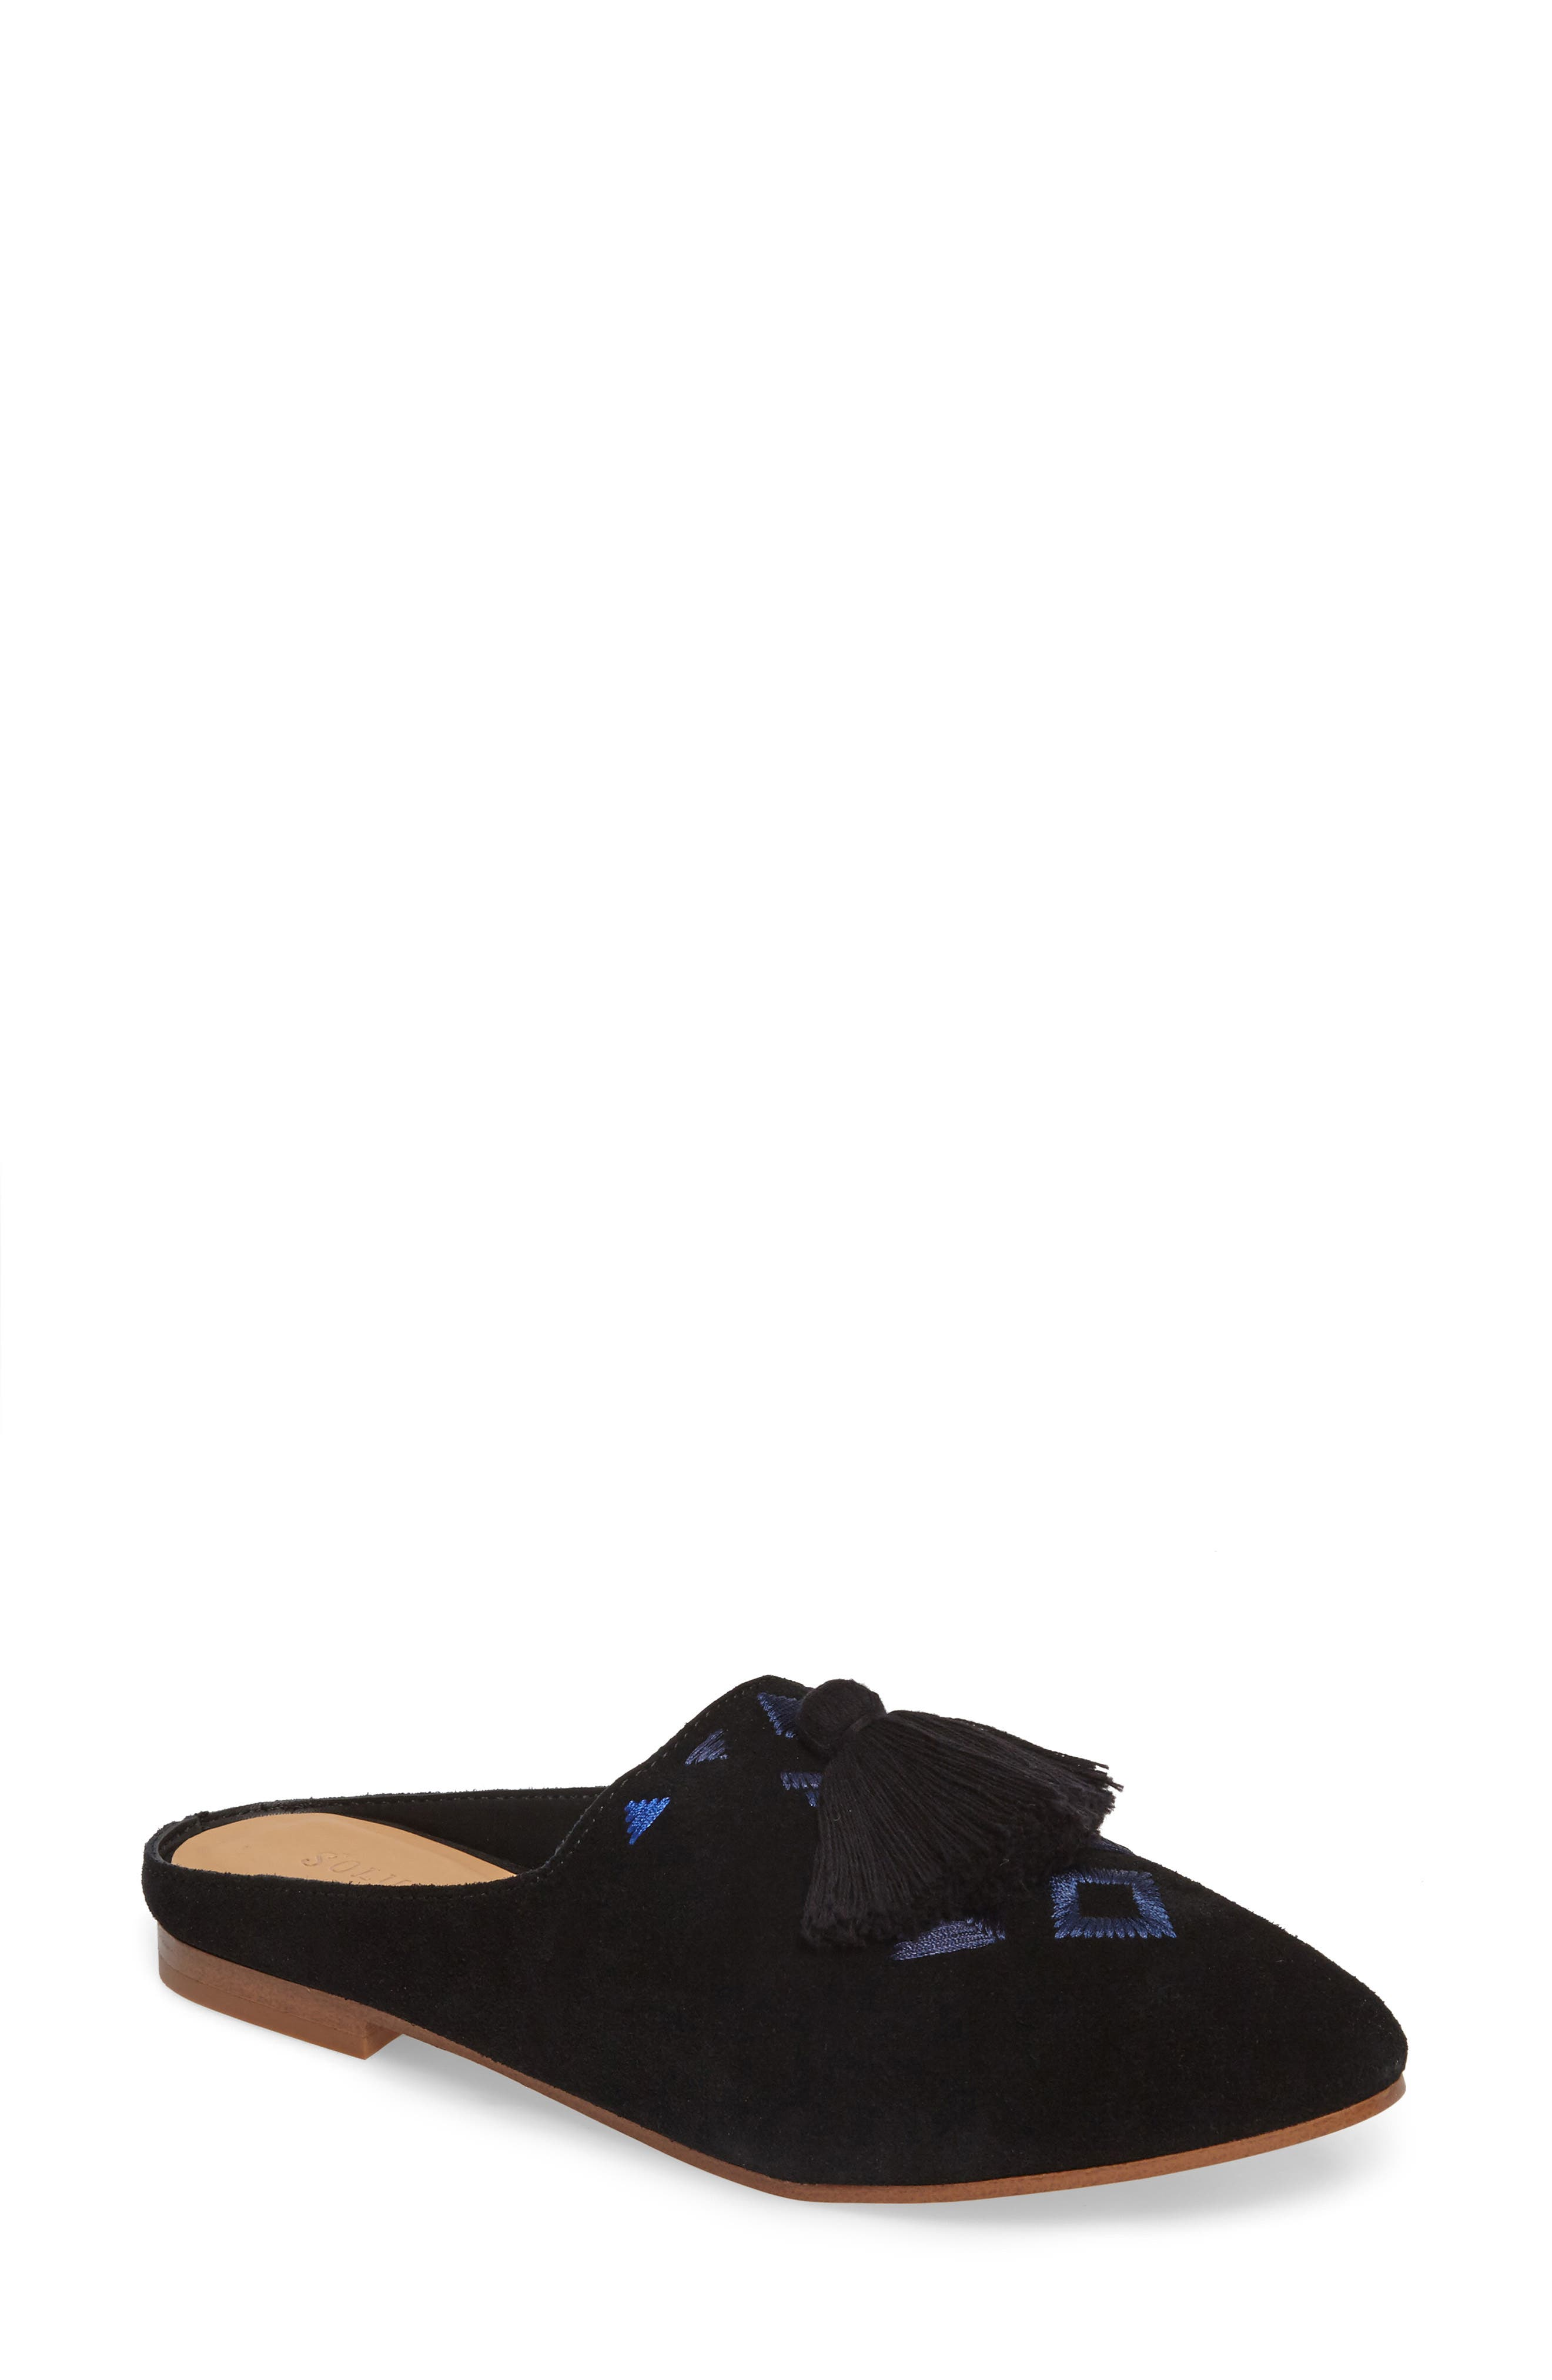 Alternate Image 1 Selected - Soludos Palazzo Loafer Mule (Women)